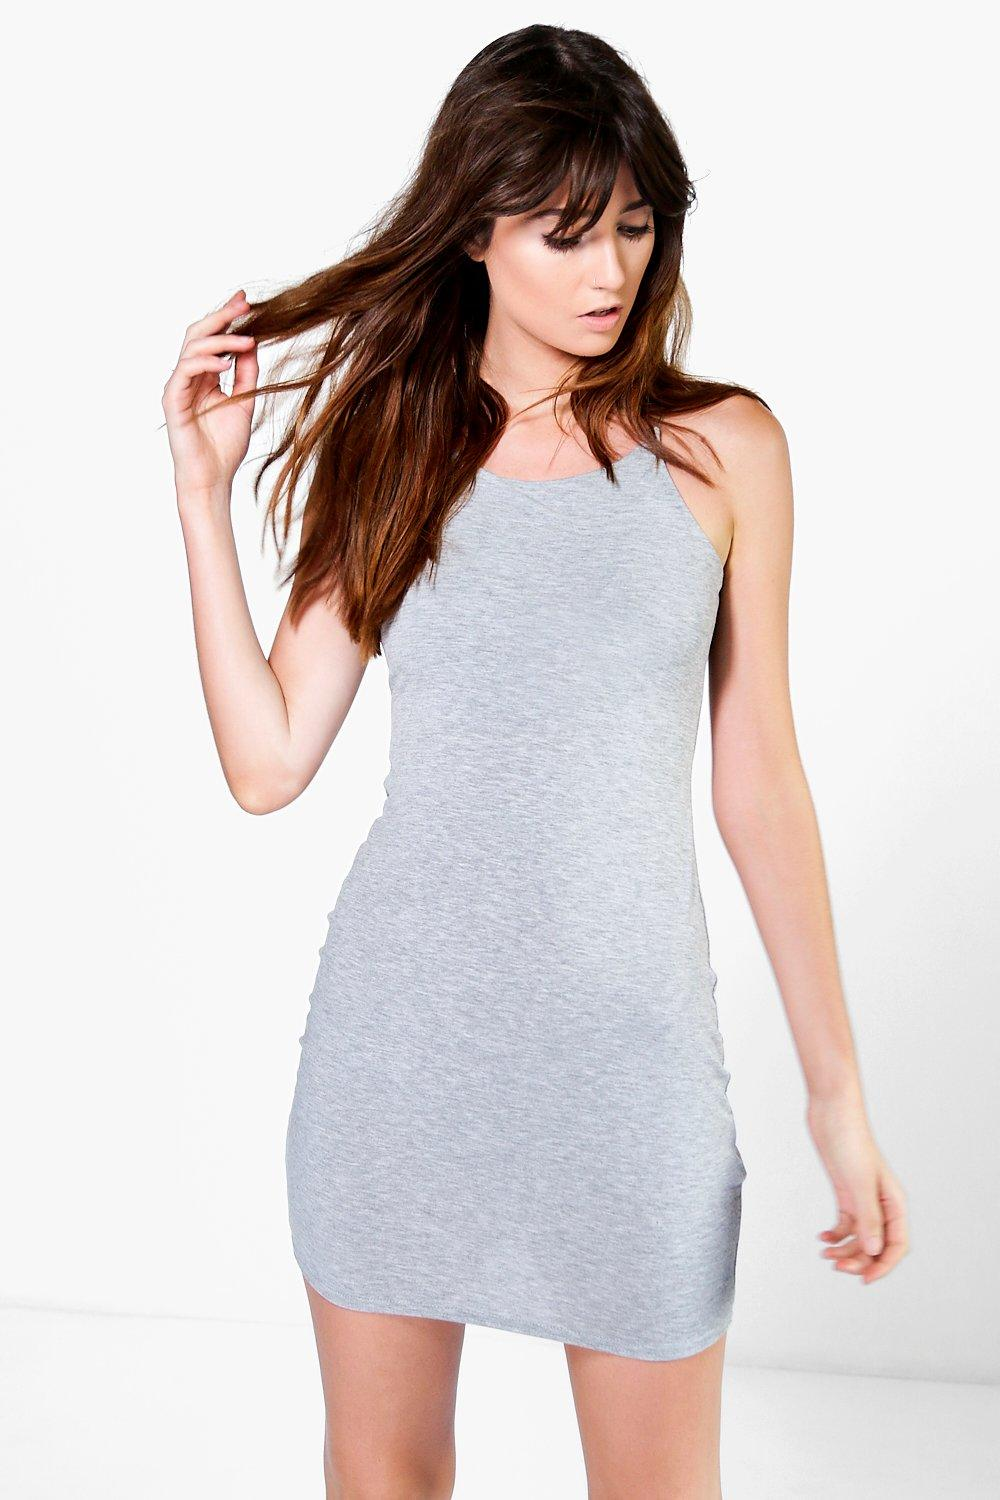 Sarah Basic Spaghetti Strap Bodycon Dress